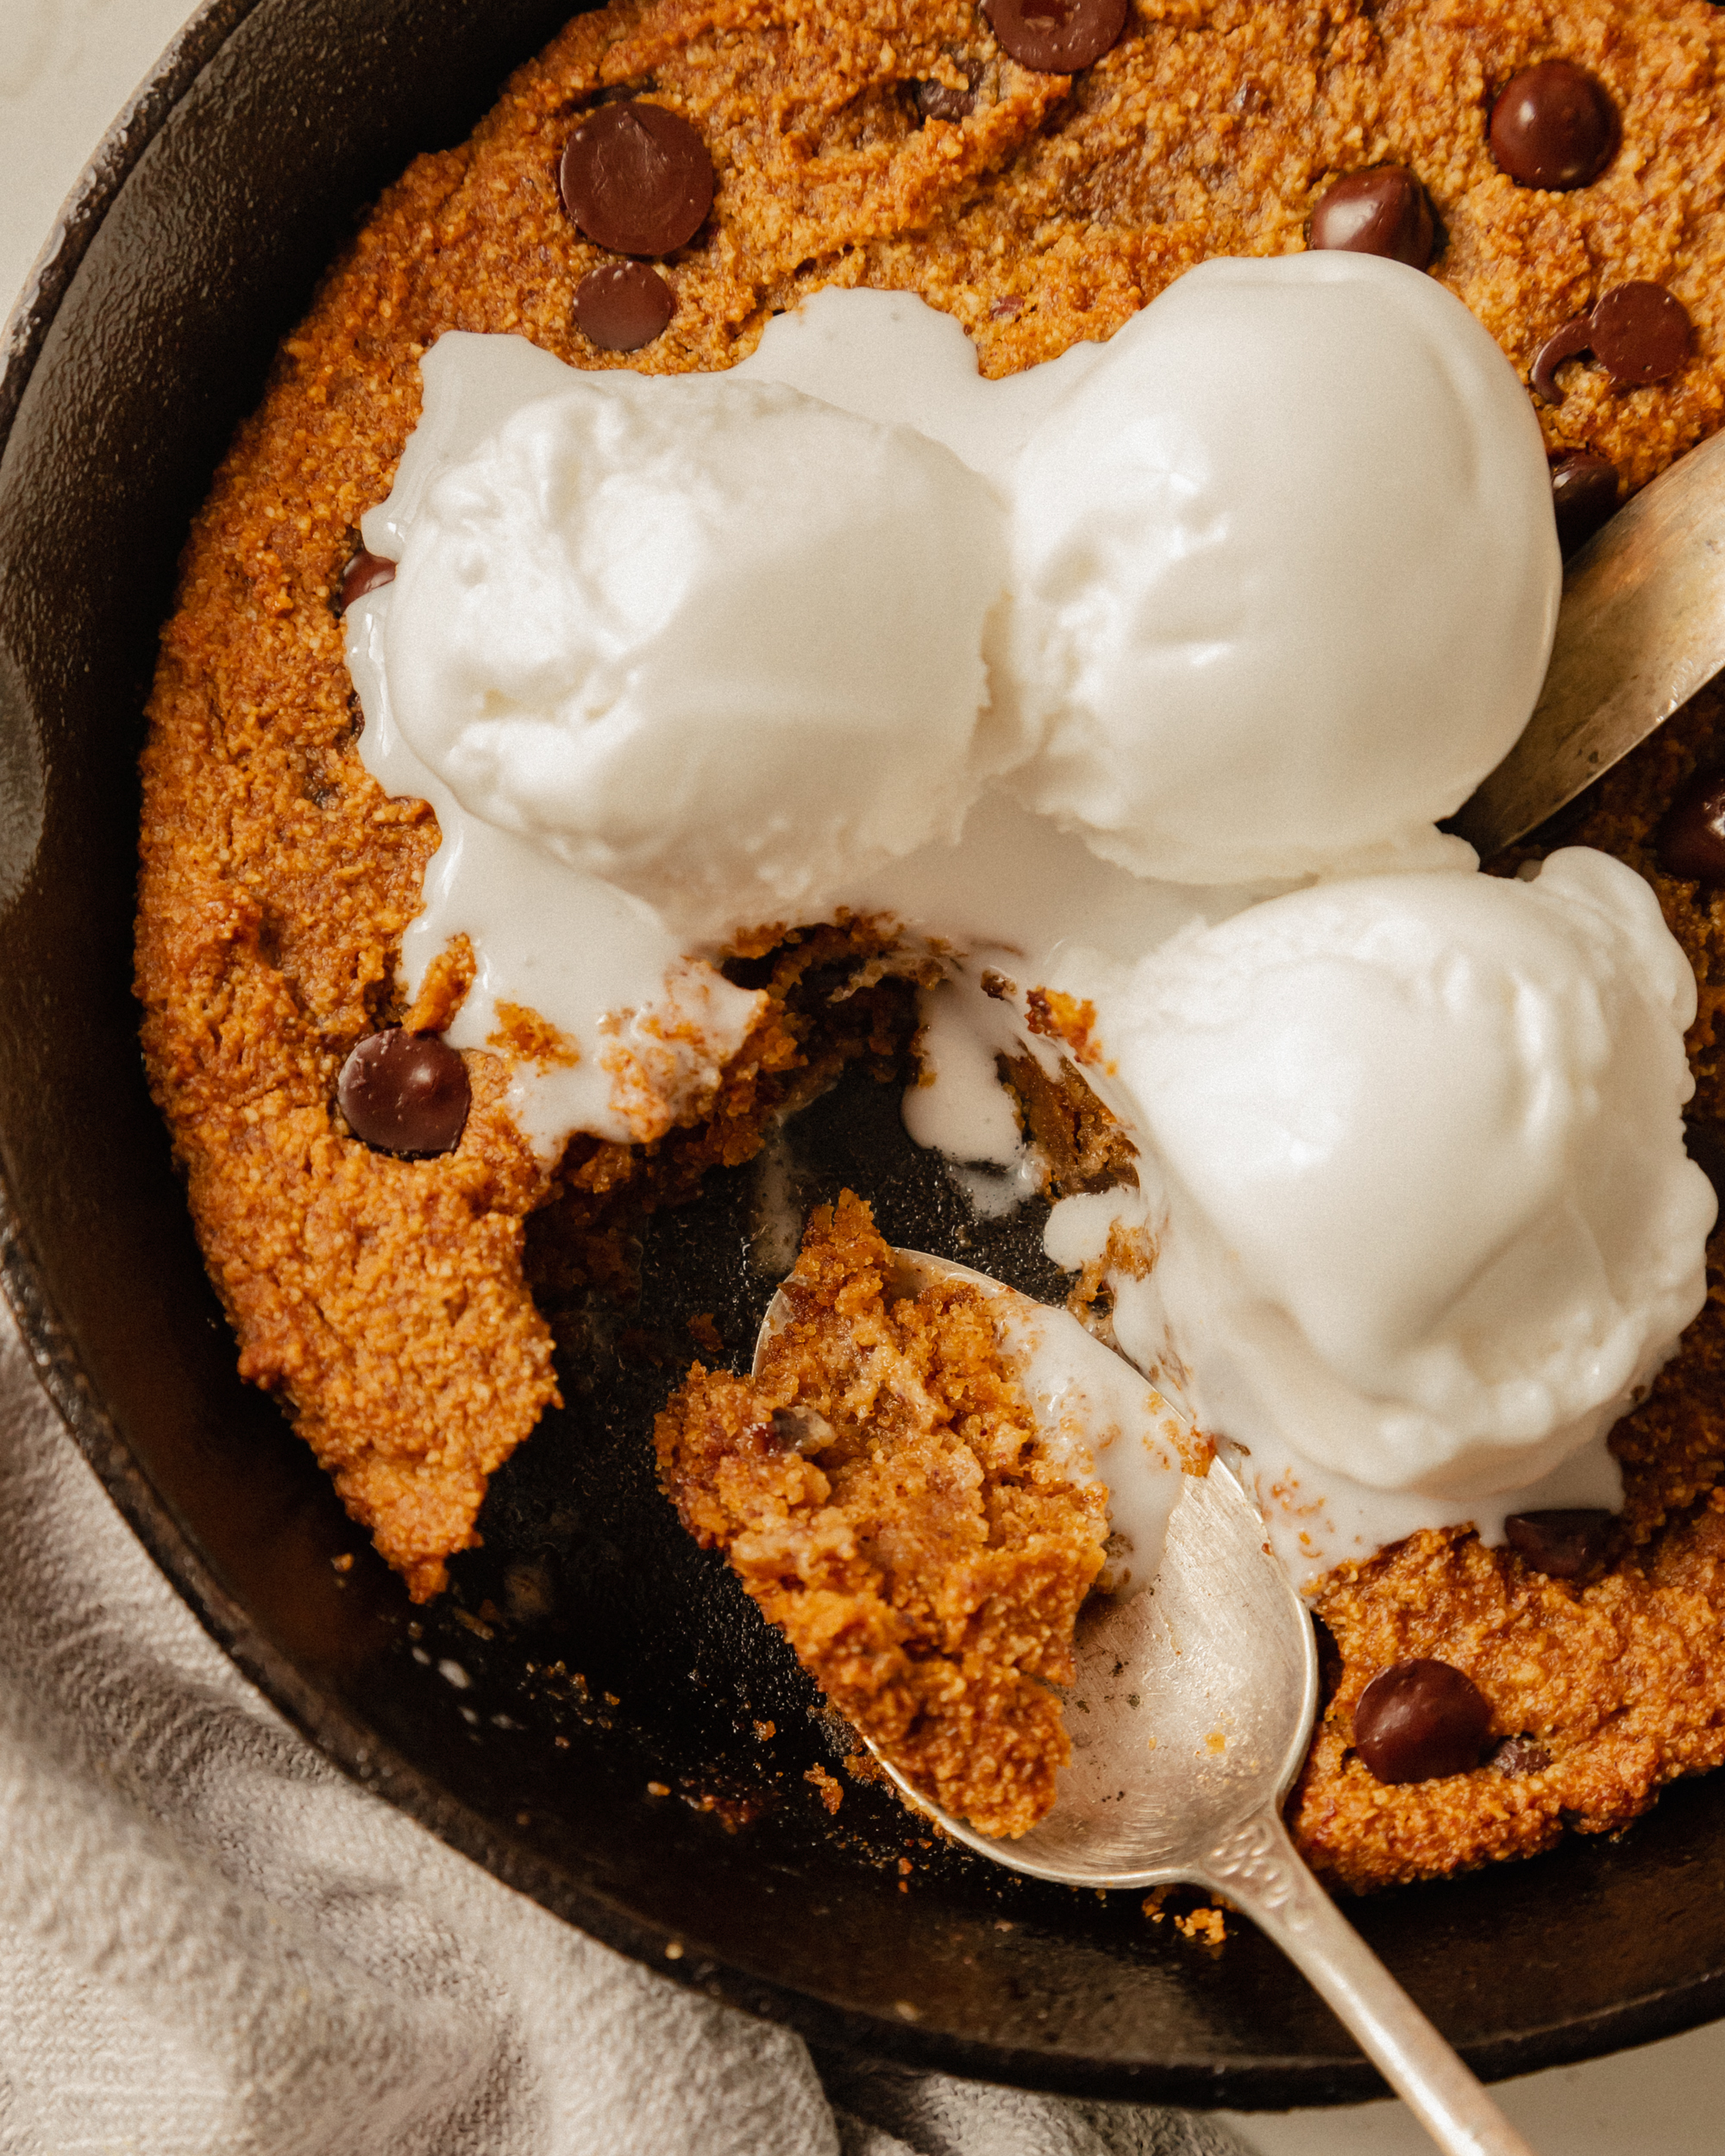 An up close, overhead shot of a slightly orange pumpkin chocolate chip skillet cookie topped with 3 scoops of vanilla ice cream. The ice cream is melt-y and several bites have been taken out of the cookie.